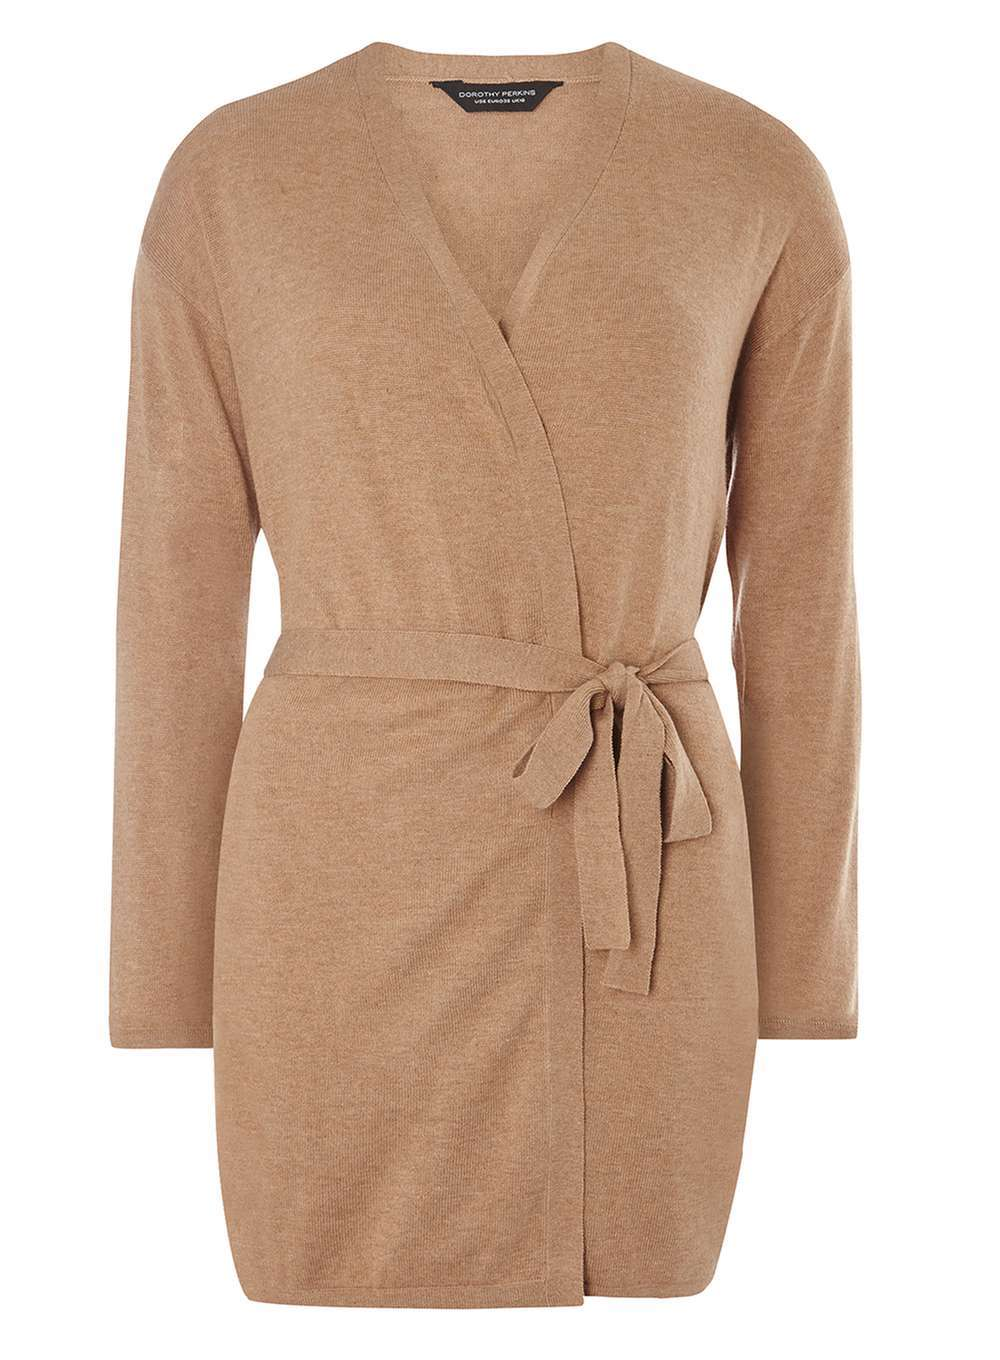 Womens Camel Tie Waist Cardigan Beige - neckline: v-neck; pattern: plain; style: wrap; predominant colour: camel; occasions: casual, work, creative work; fibres: acrylic - mix; fit: standard fit; length: mid thigh; waist detail: belted waist/tie at waist/drawstring; sleeve length: long sleeve; sleeve style: standard; texture group: knits/crochet; pattern type: knitted - fine stitch; season: a/w 2016